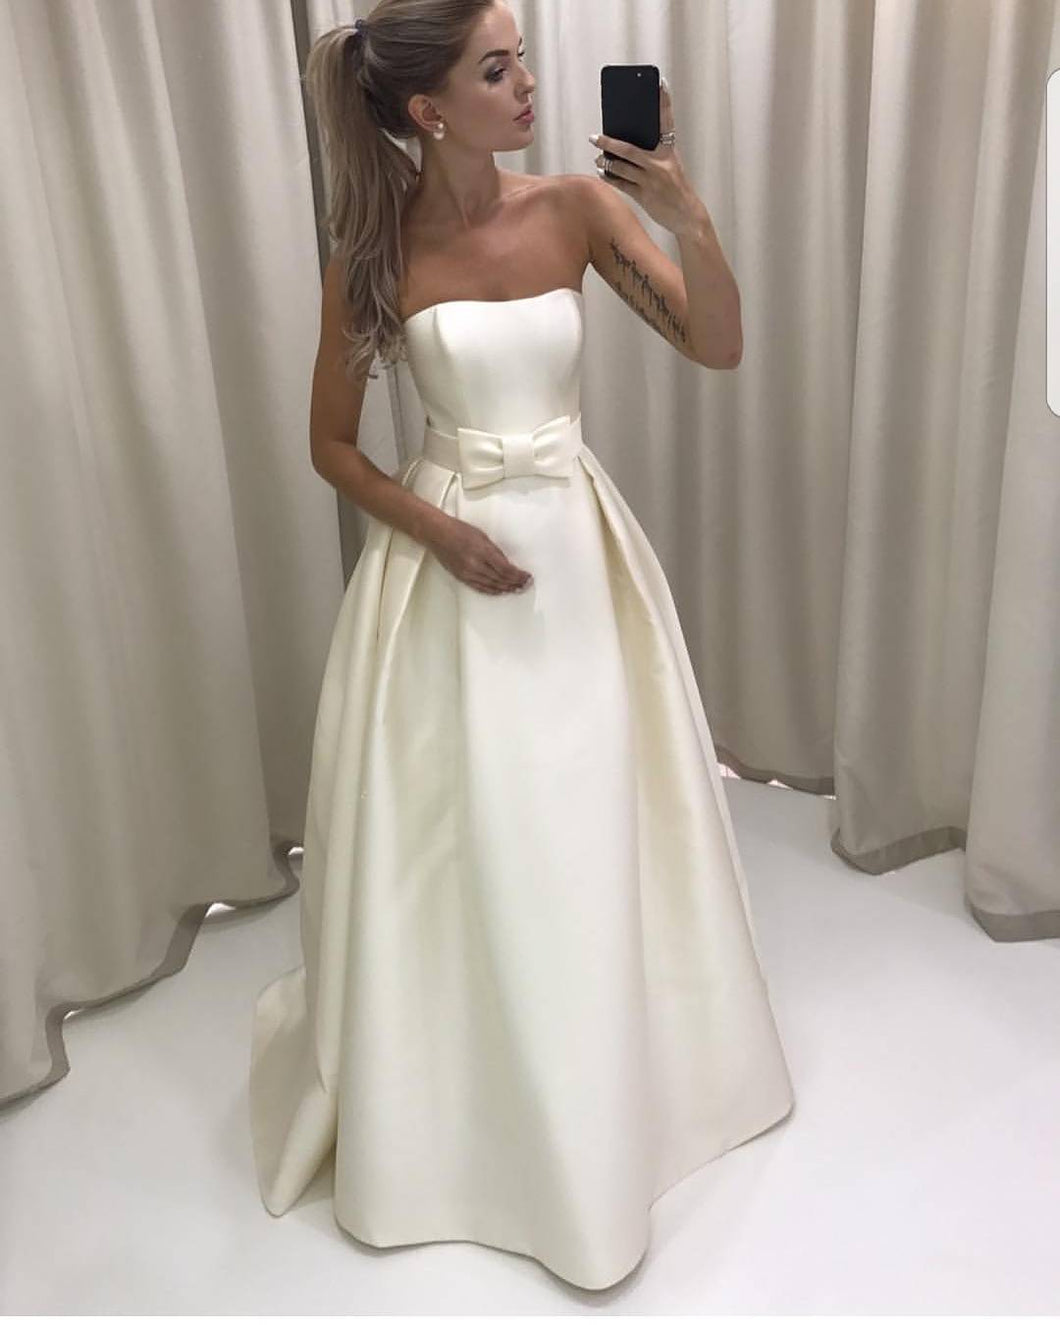 Simple Strapless Wedding Dress Ivory Satin Bridal Gown with a Bow ...